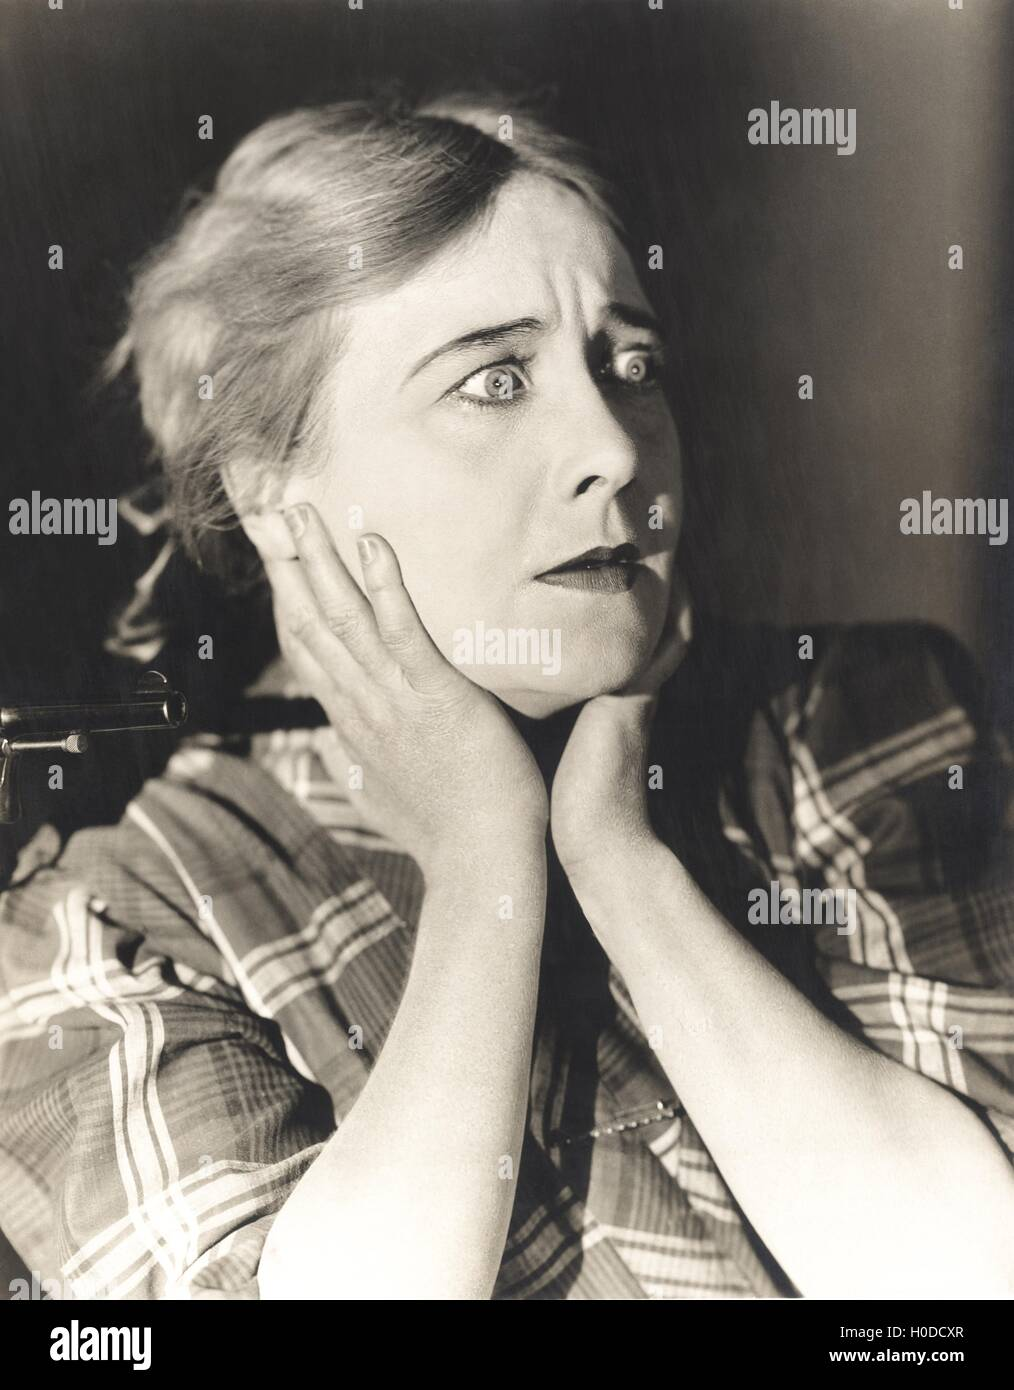 Woman in a state of shock - Stock Image